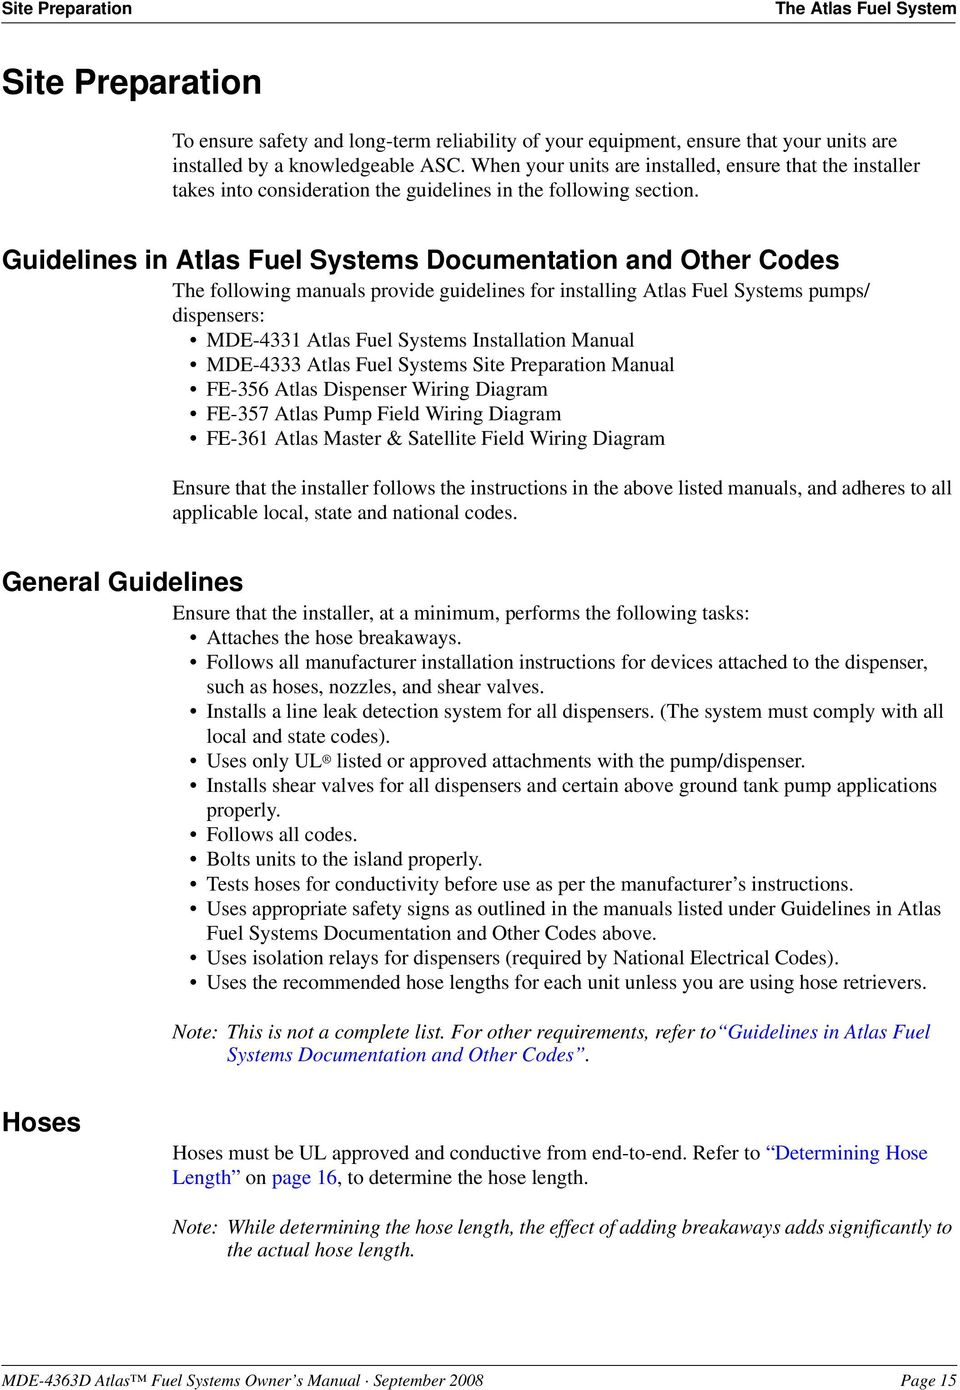 Atlas Fuel Systems Owner S Manual Mde 4363d Pdf Jack Plate Wiring Diagram Guidelines In Documentation And Other Codes The Following Manuals Provide For Installing